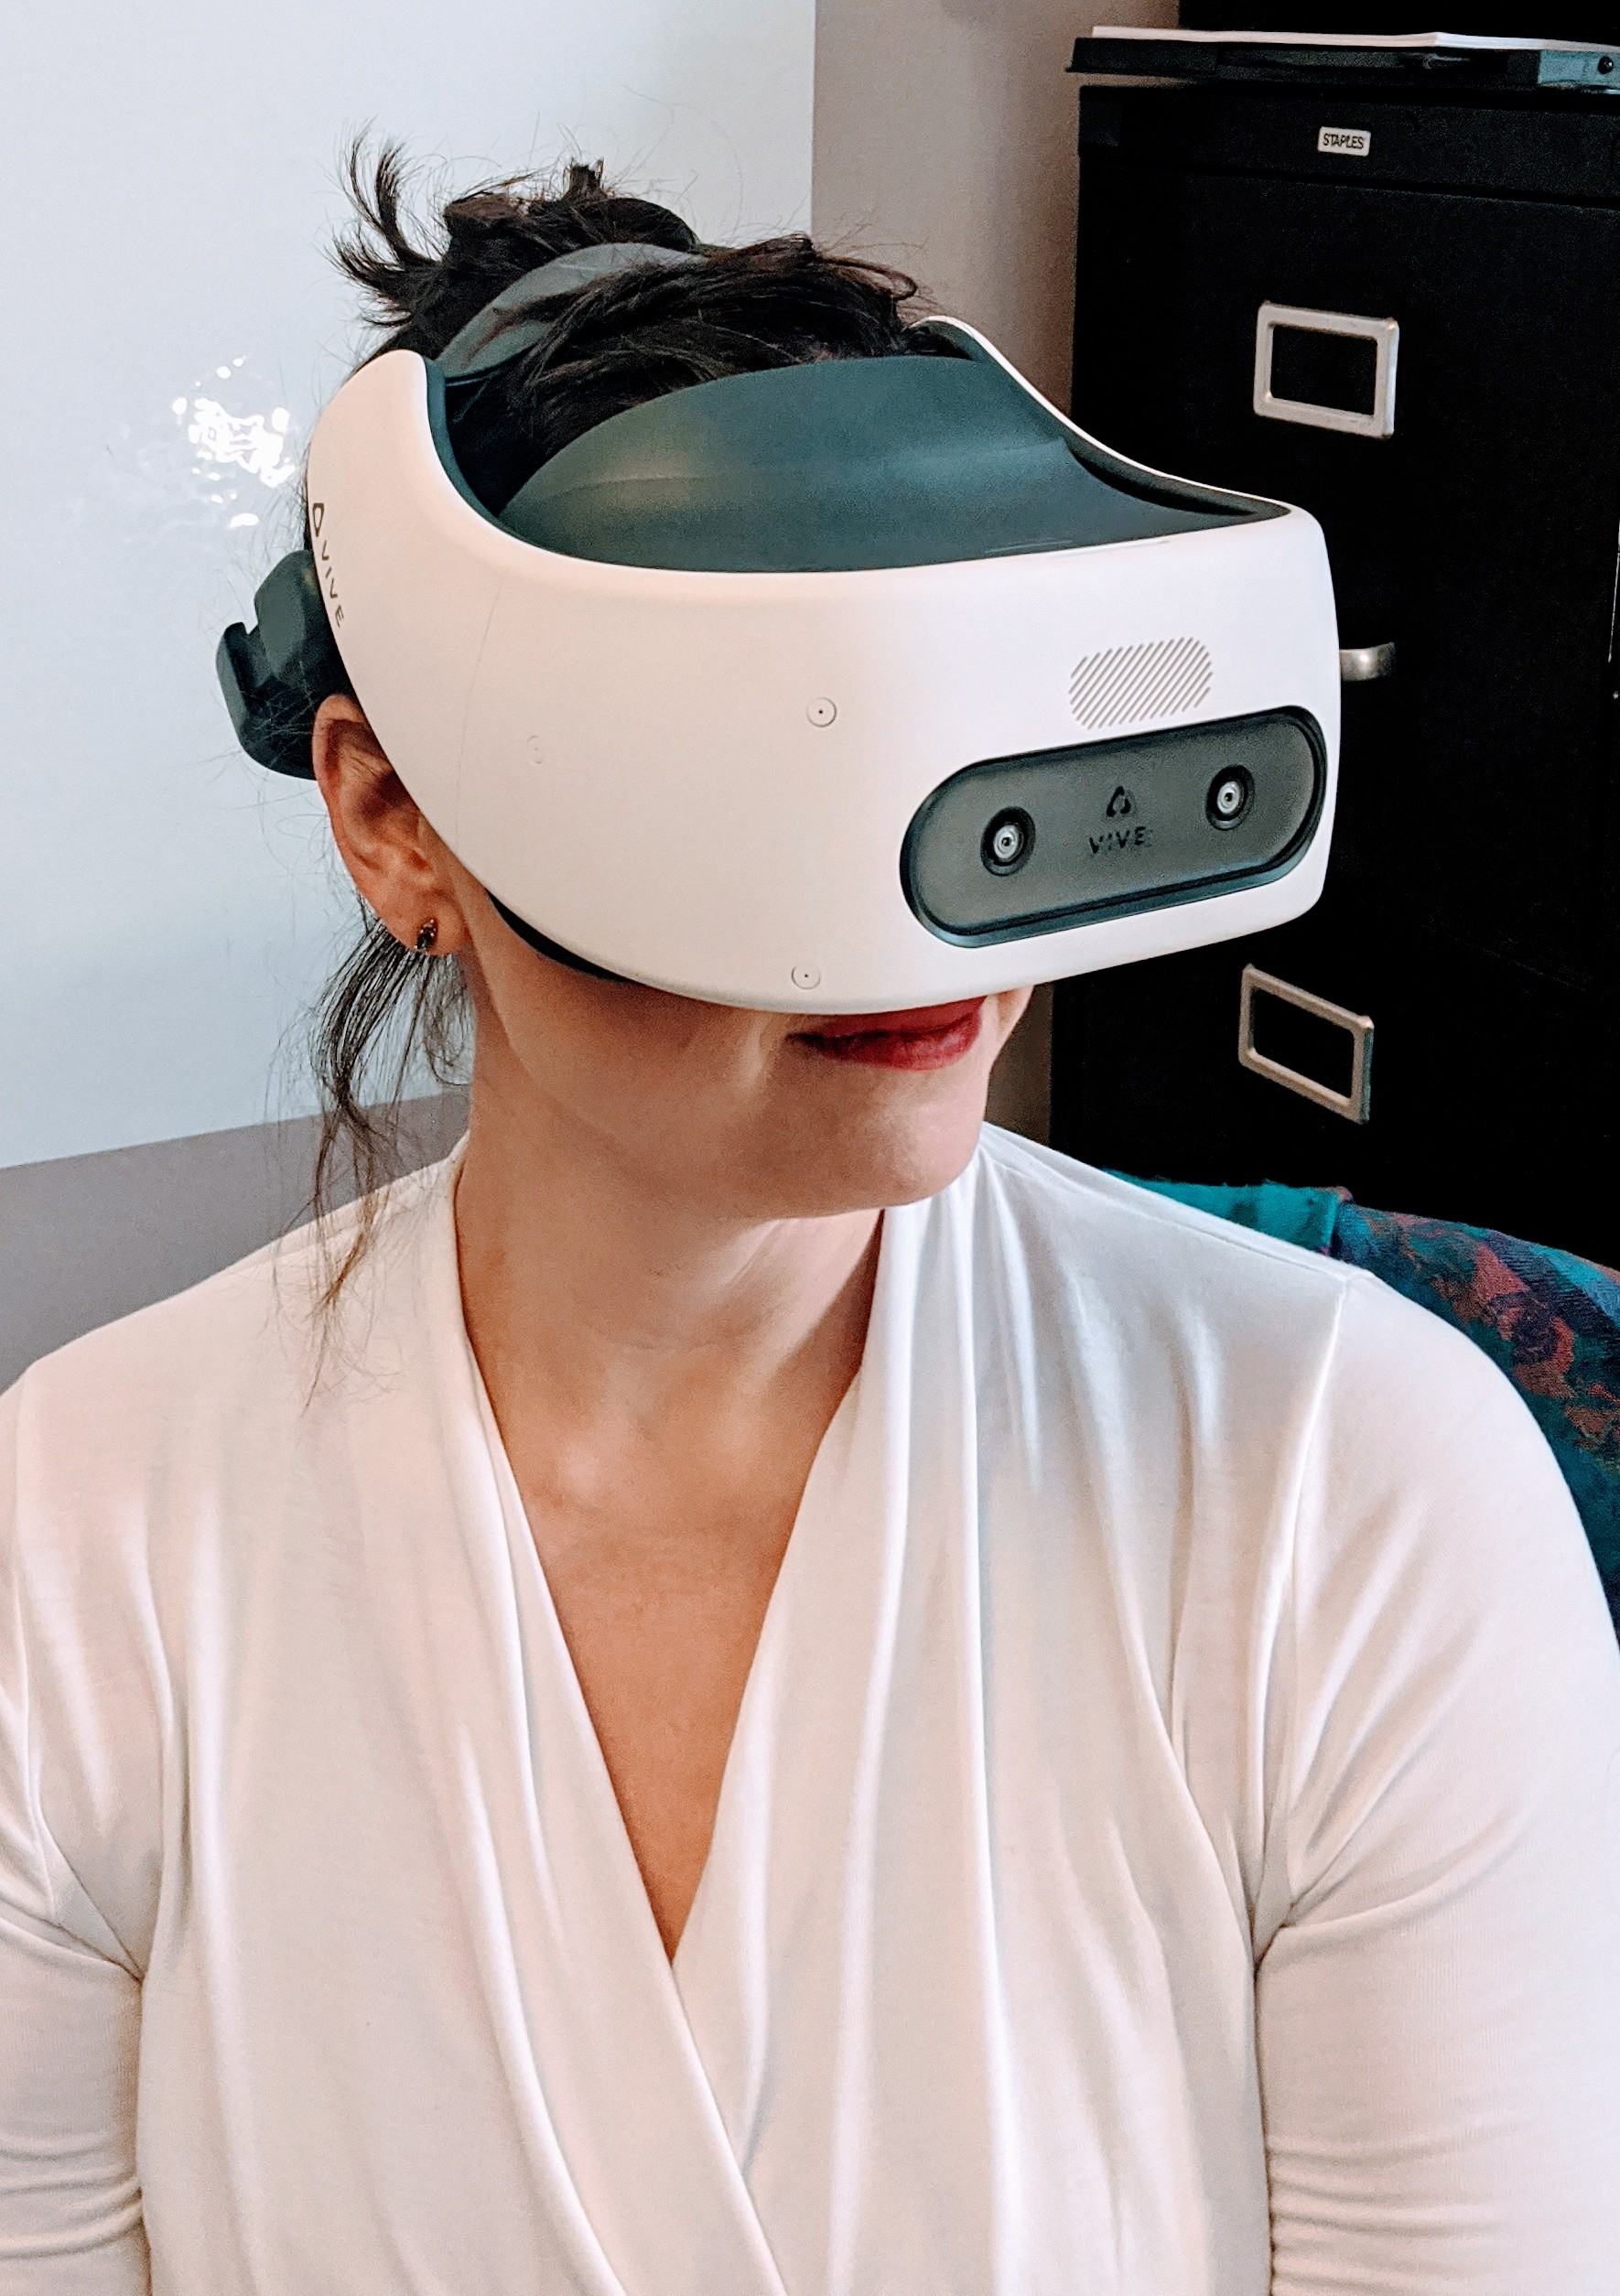 Bree McEwan in VR headset